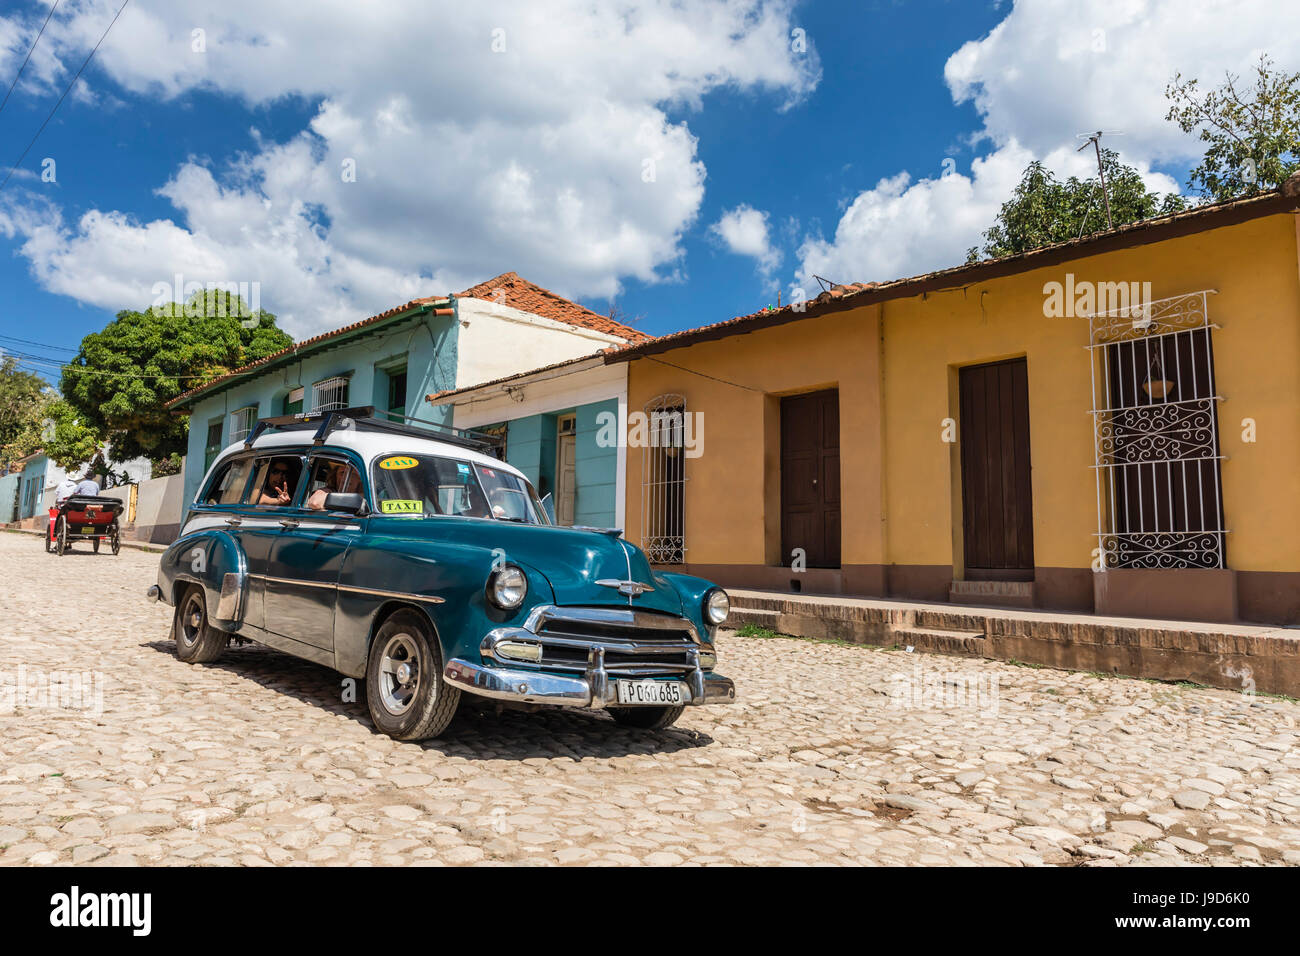 A vintage 1950's American car working as a taxi in the town of Trinidad, UNESCO, Cuba, West Indies, Caribbean - Stock Image